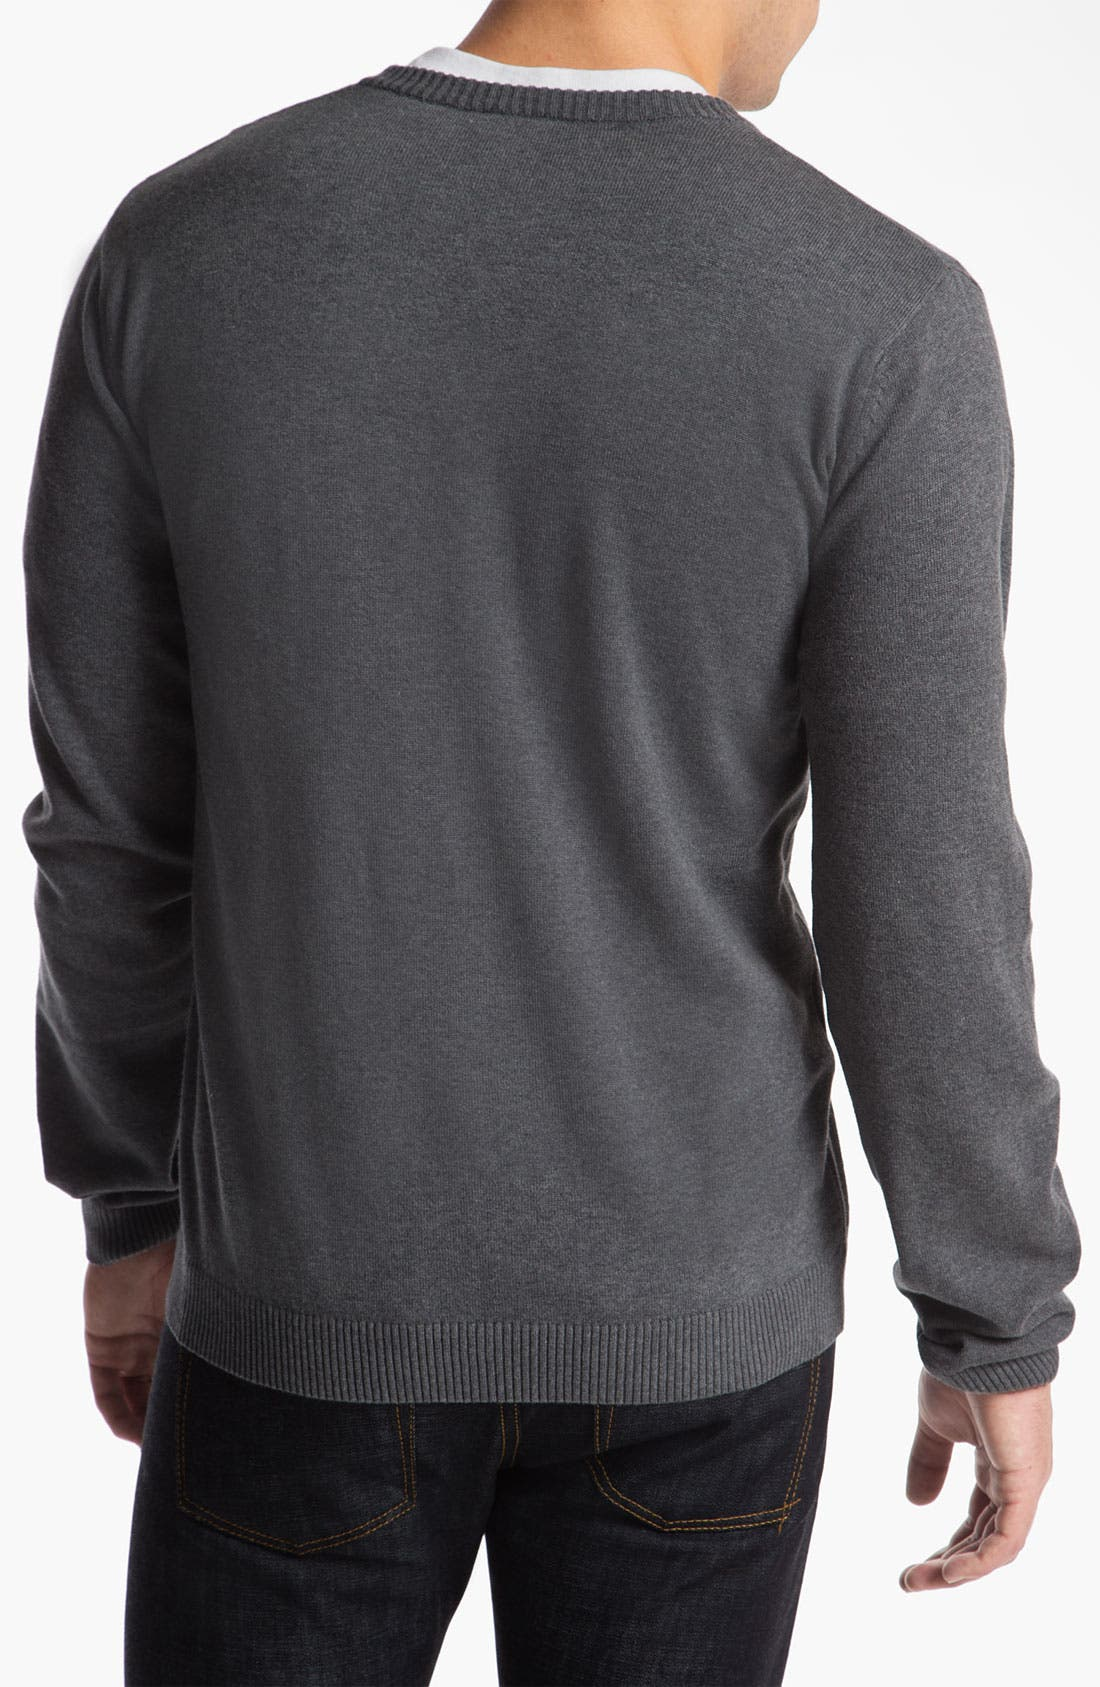 Alternate Image 2  - Lacoste 'Classic' V-Neck Sweater